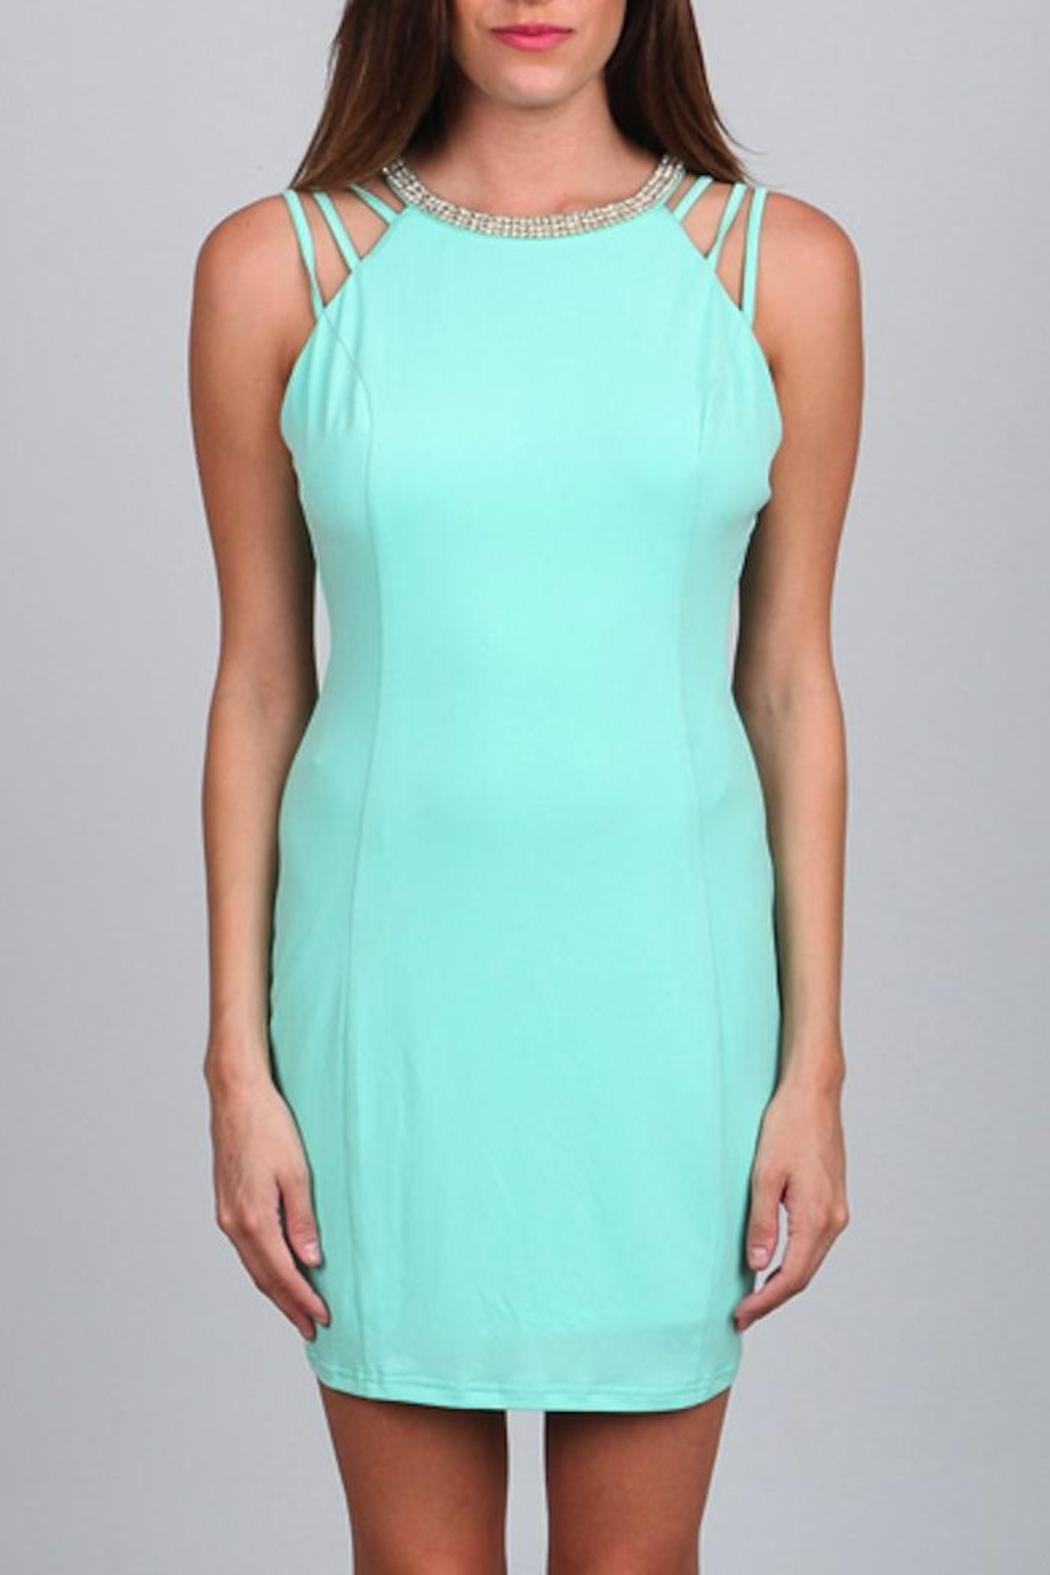 Ark & Co. Strappy Bodycon Dress - Main Image